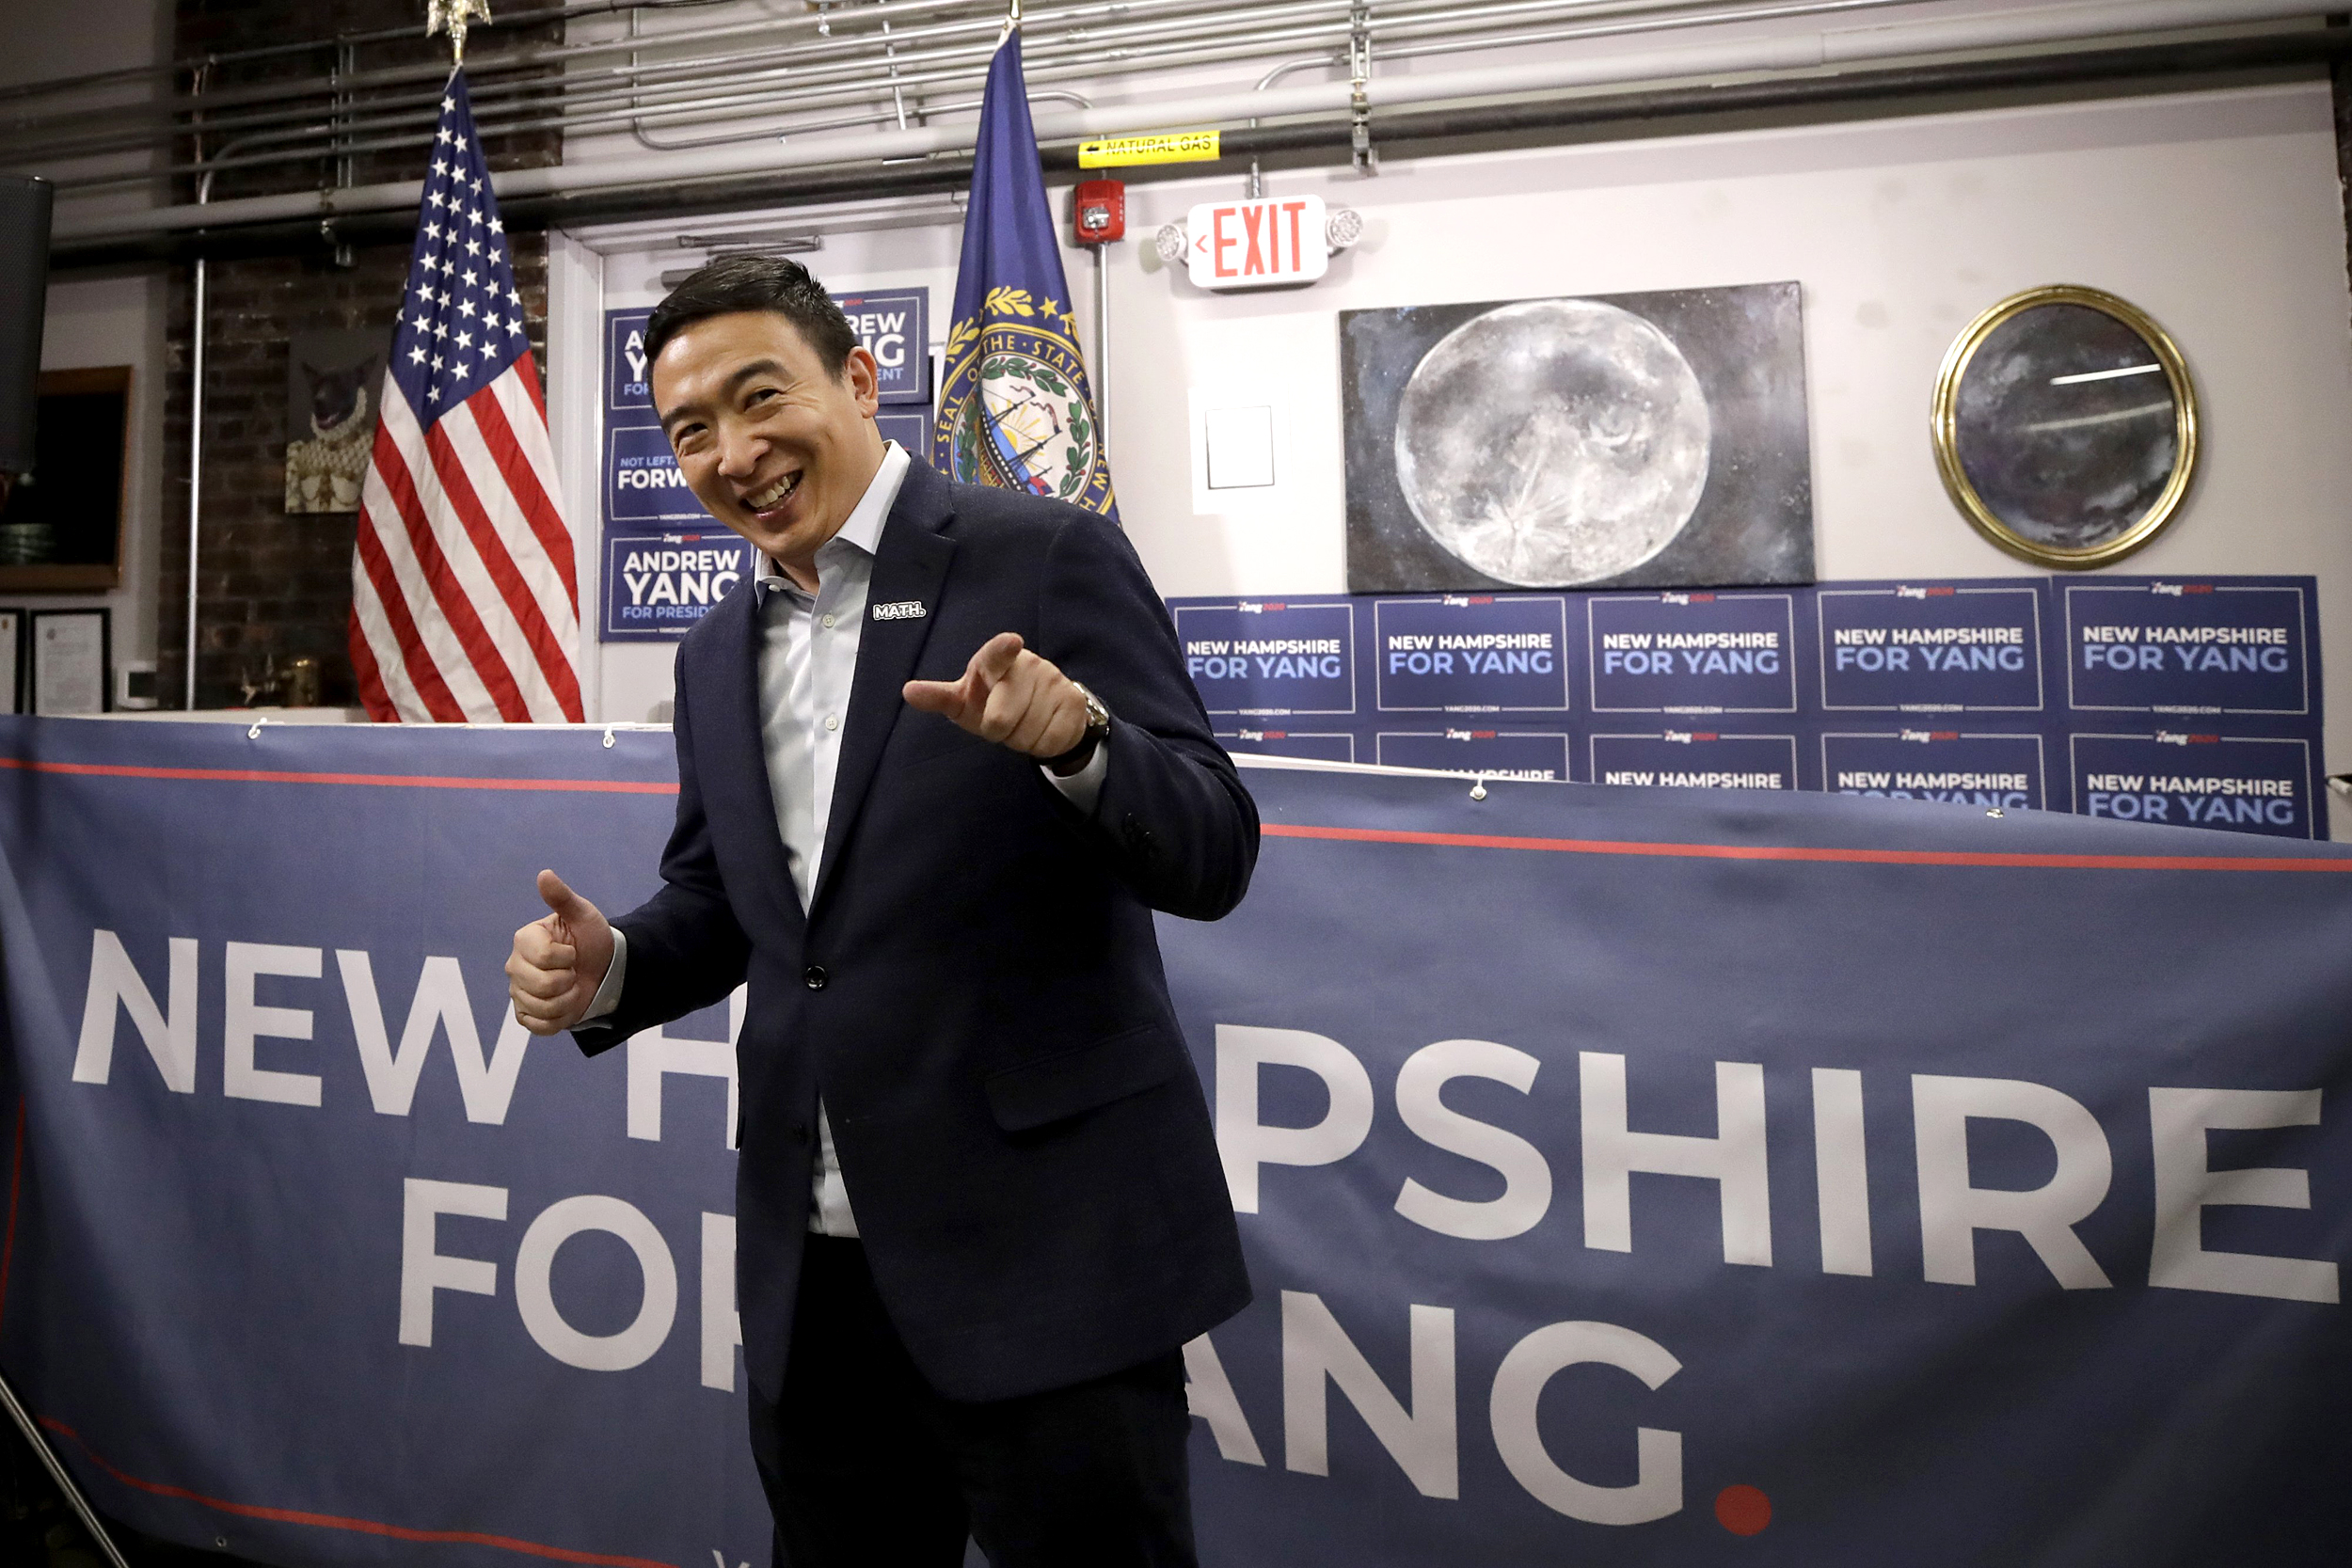 'A-Yang-problem':-How-Yang-could-pull-critical-support-from-Sanders-in-New-Hampshire